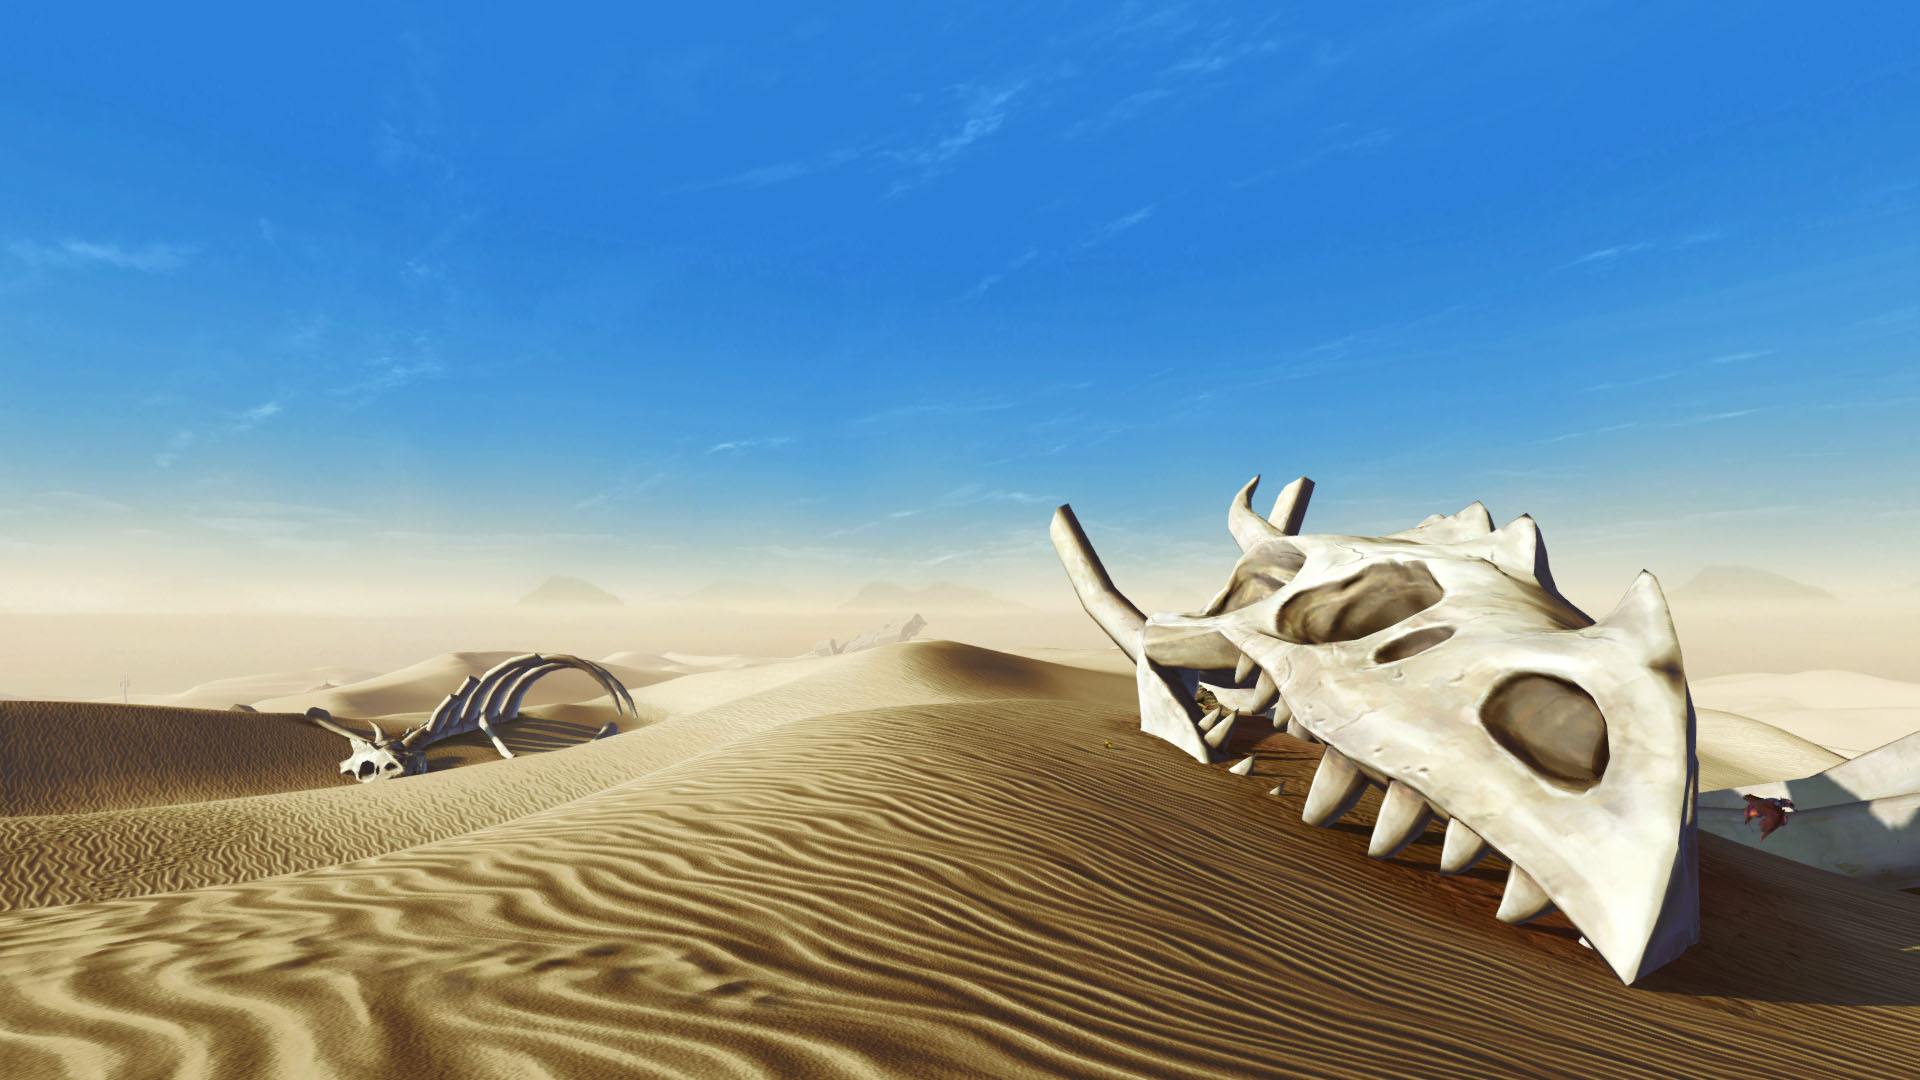 SWTOR screenshot of two krayt dragon skeletons laying in the desert of Tatooine under a clear blue sky